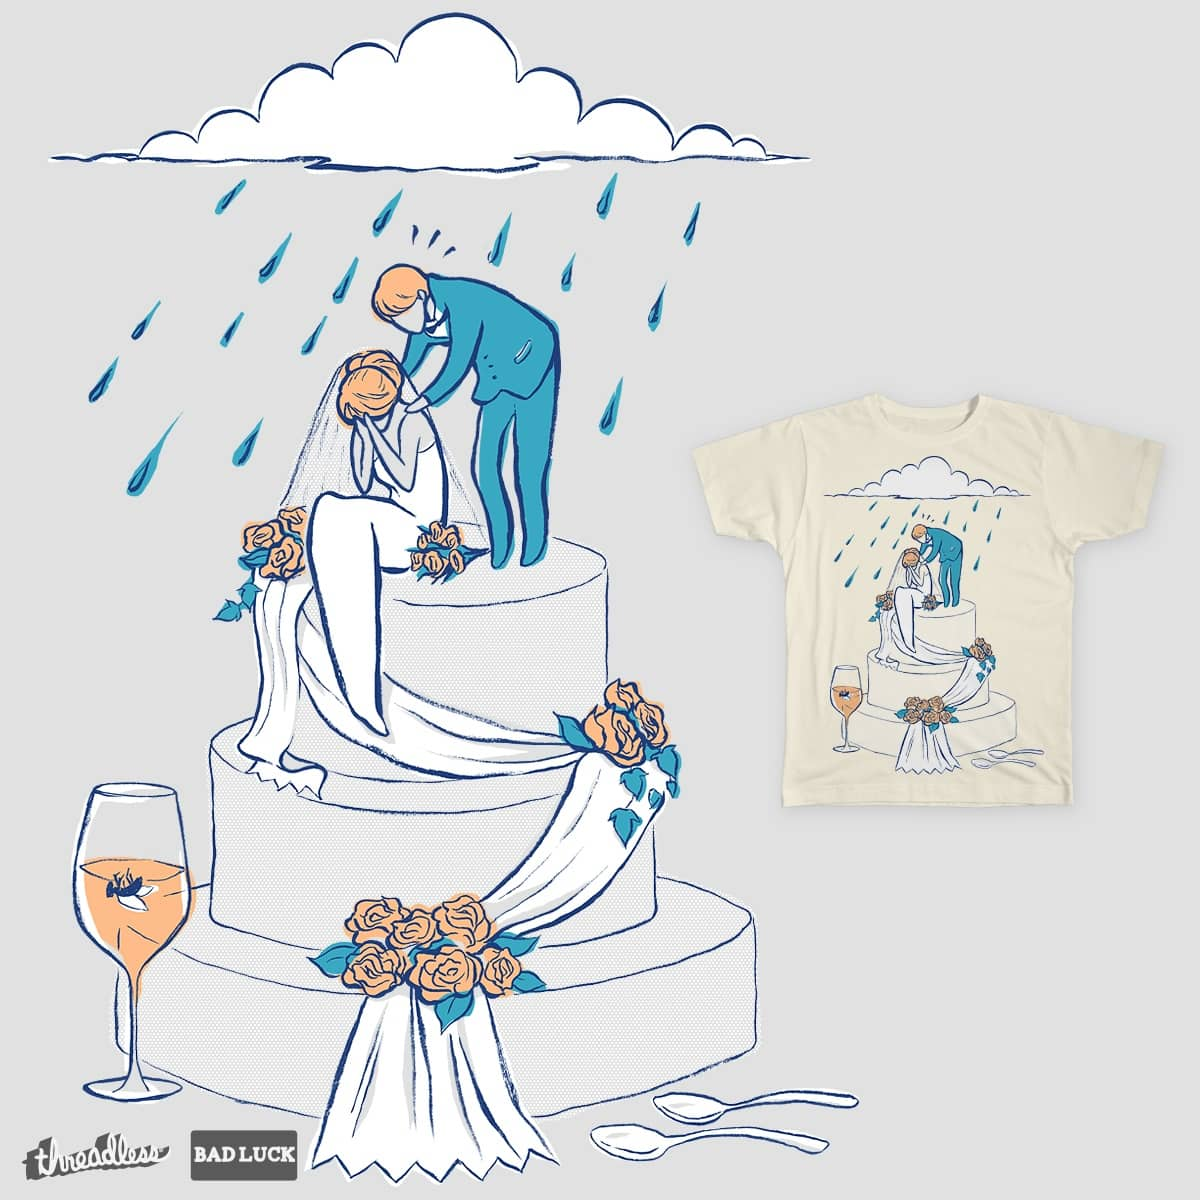 Score its like rain on your wedding day by sloobeast on threadless its like rain on your wedding day by sloobeast on threadless junglespirit Gallery